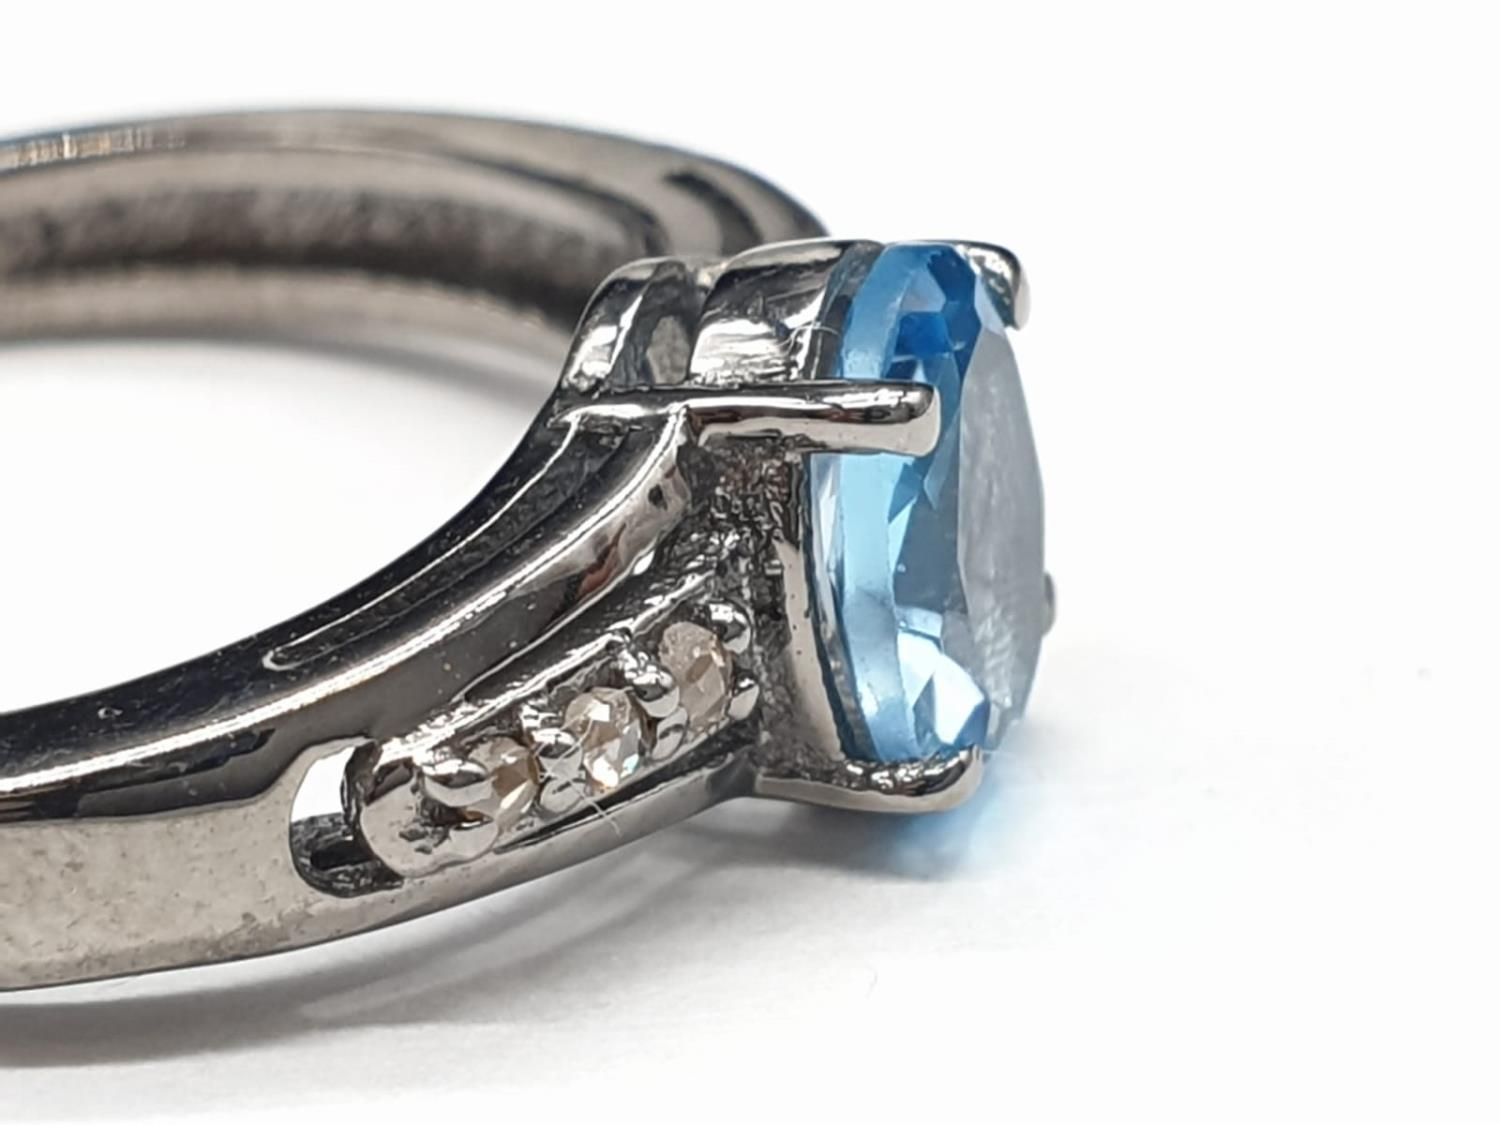 0.86 Ct Blue topaz stone inset a blackened silver ring. With 0.05 Ct rose cut diamonds, weight 2.35g - Image 2 of 7